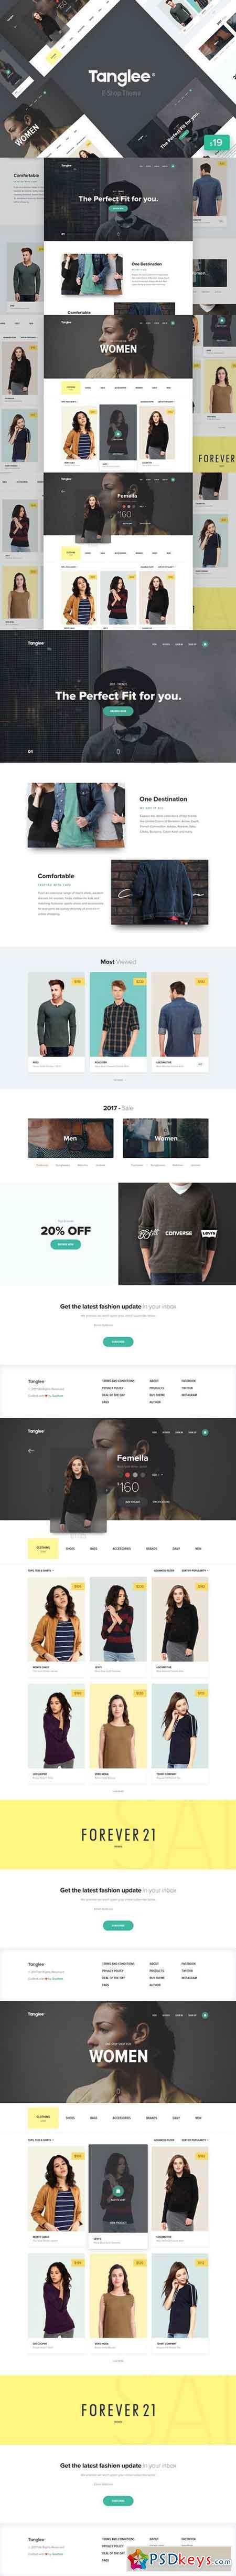 Tanglee - E-Shop theme PSD 1211138